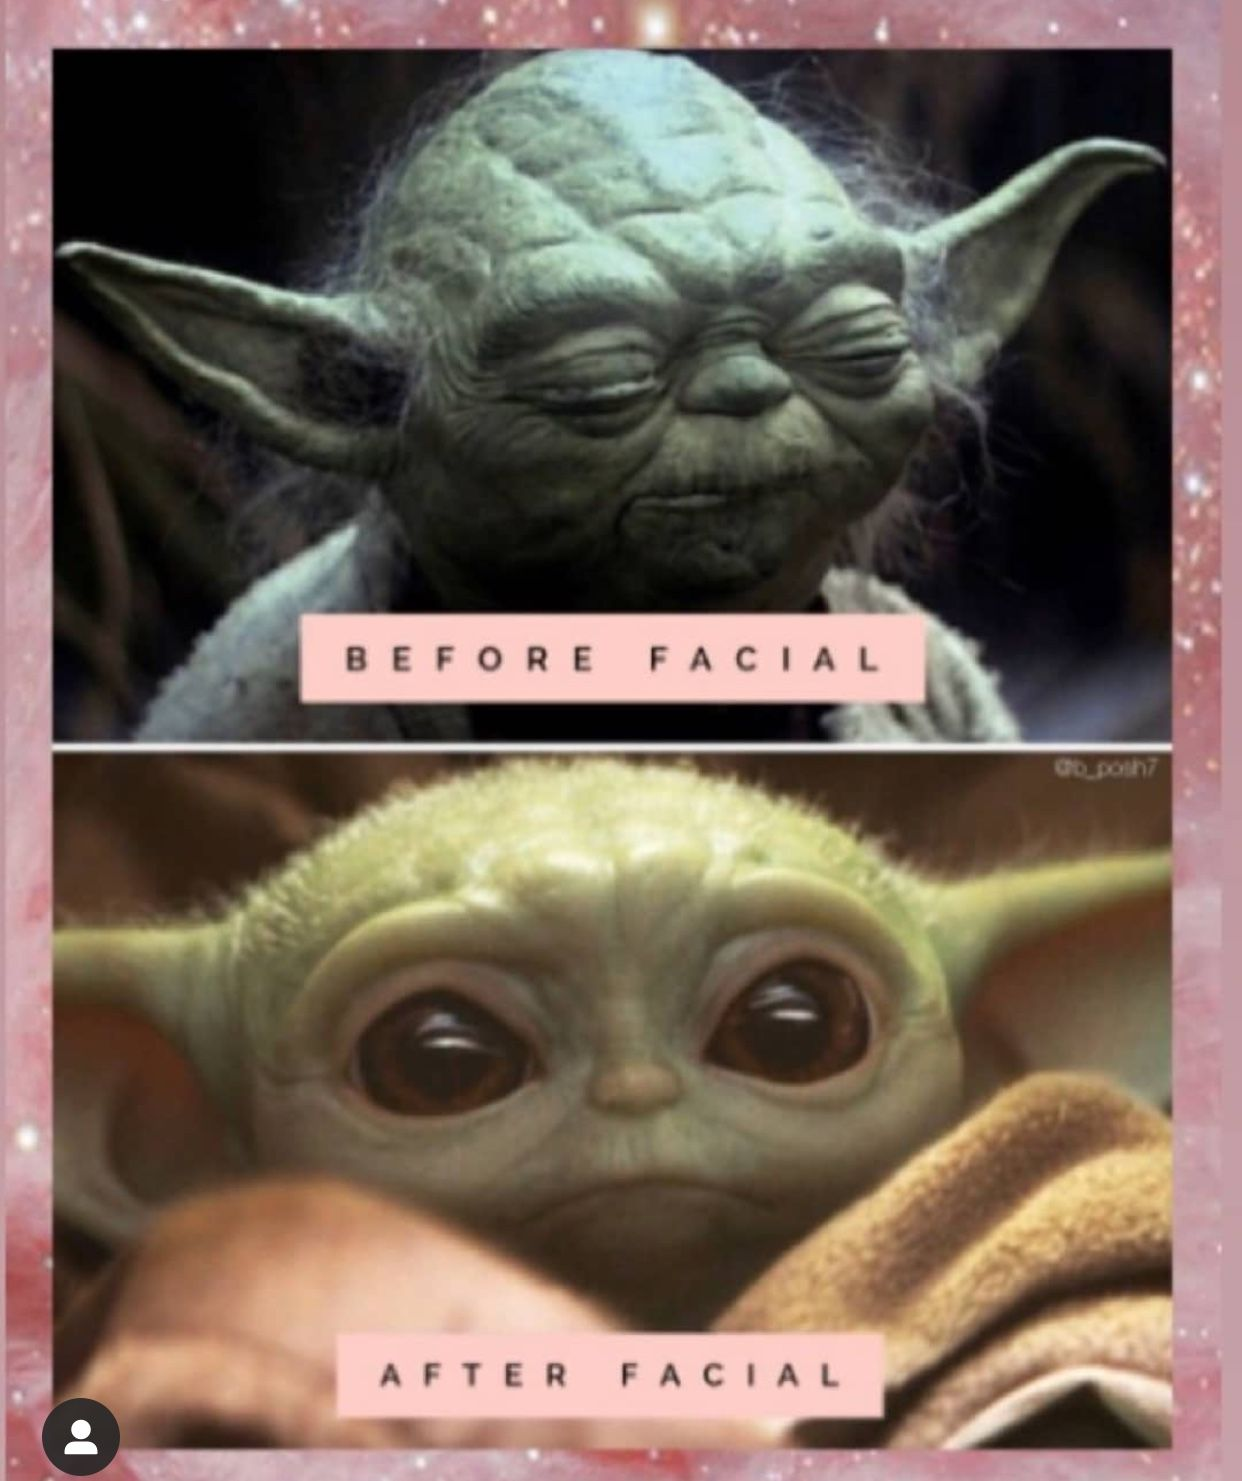 Pin by Kris Guidry on Baby Yoda in 2020 Yoda, Funny